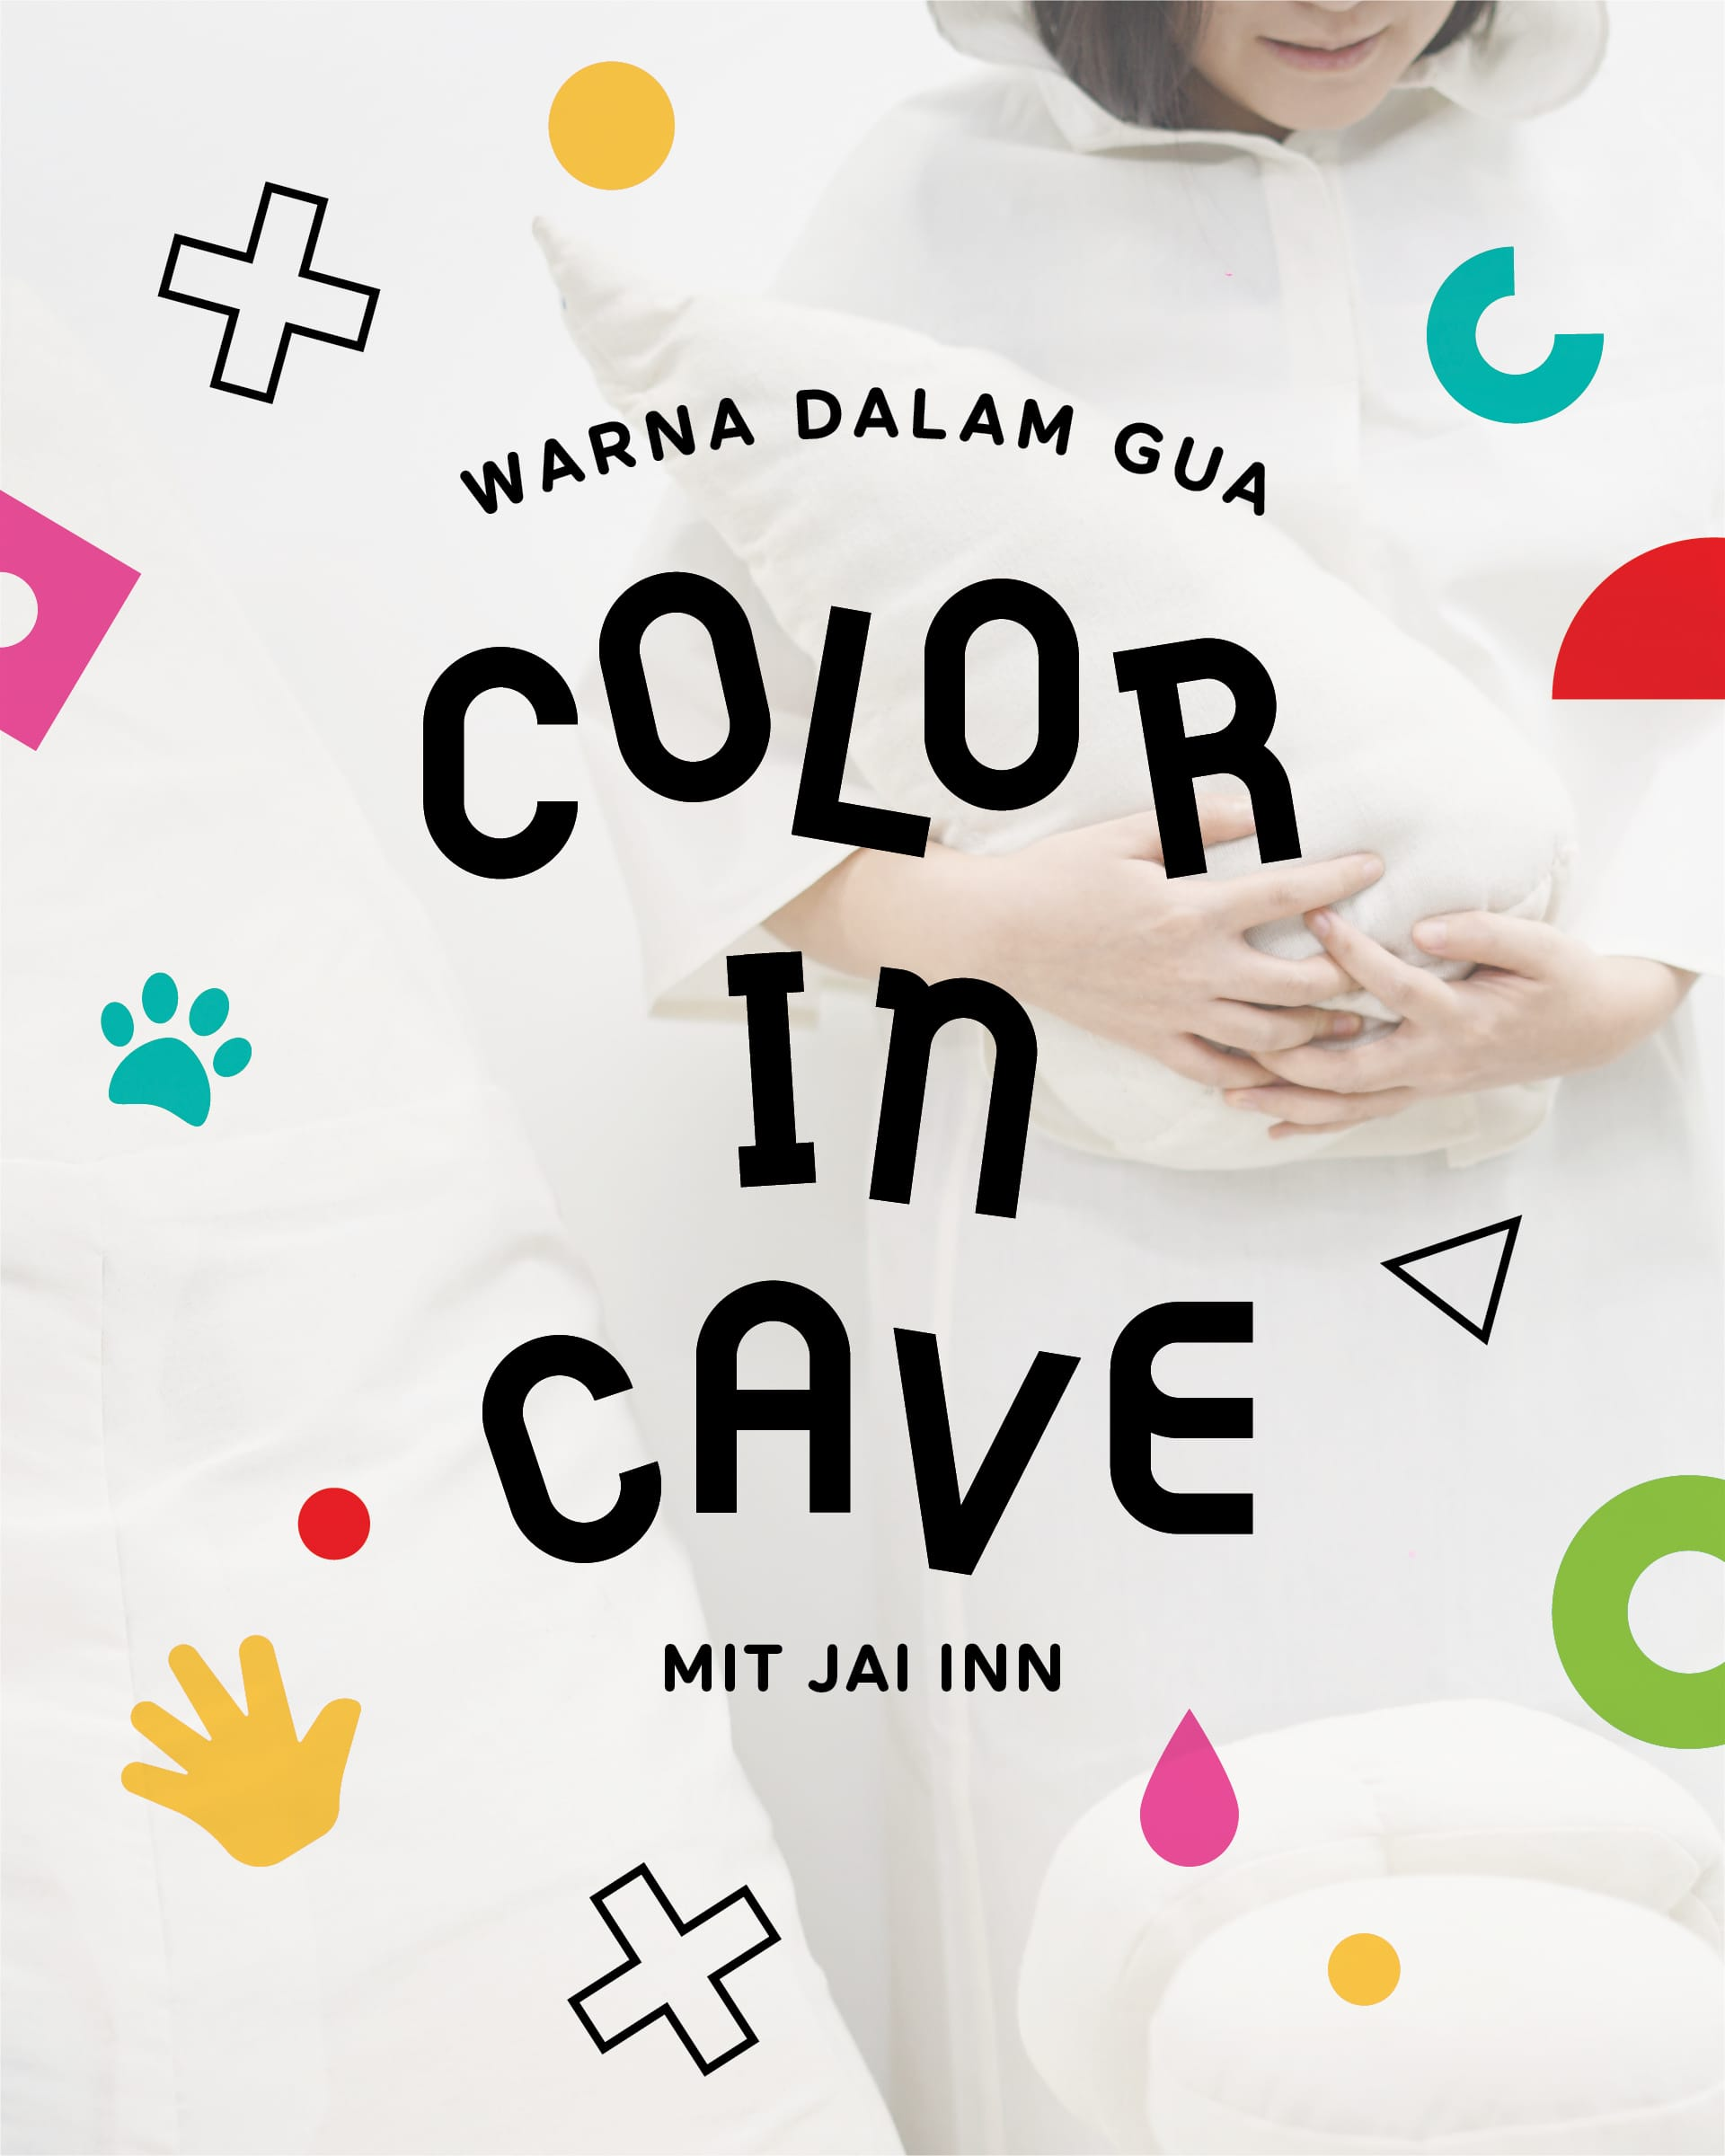 Children's Art Space Color in Cave by Mit Jai Inn  Thank you for reading! Read many other interestin